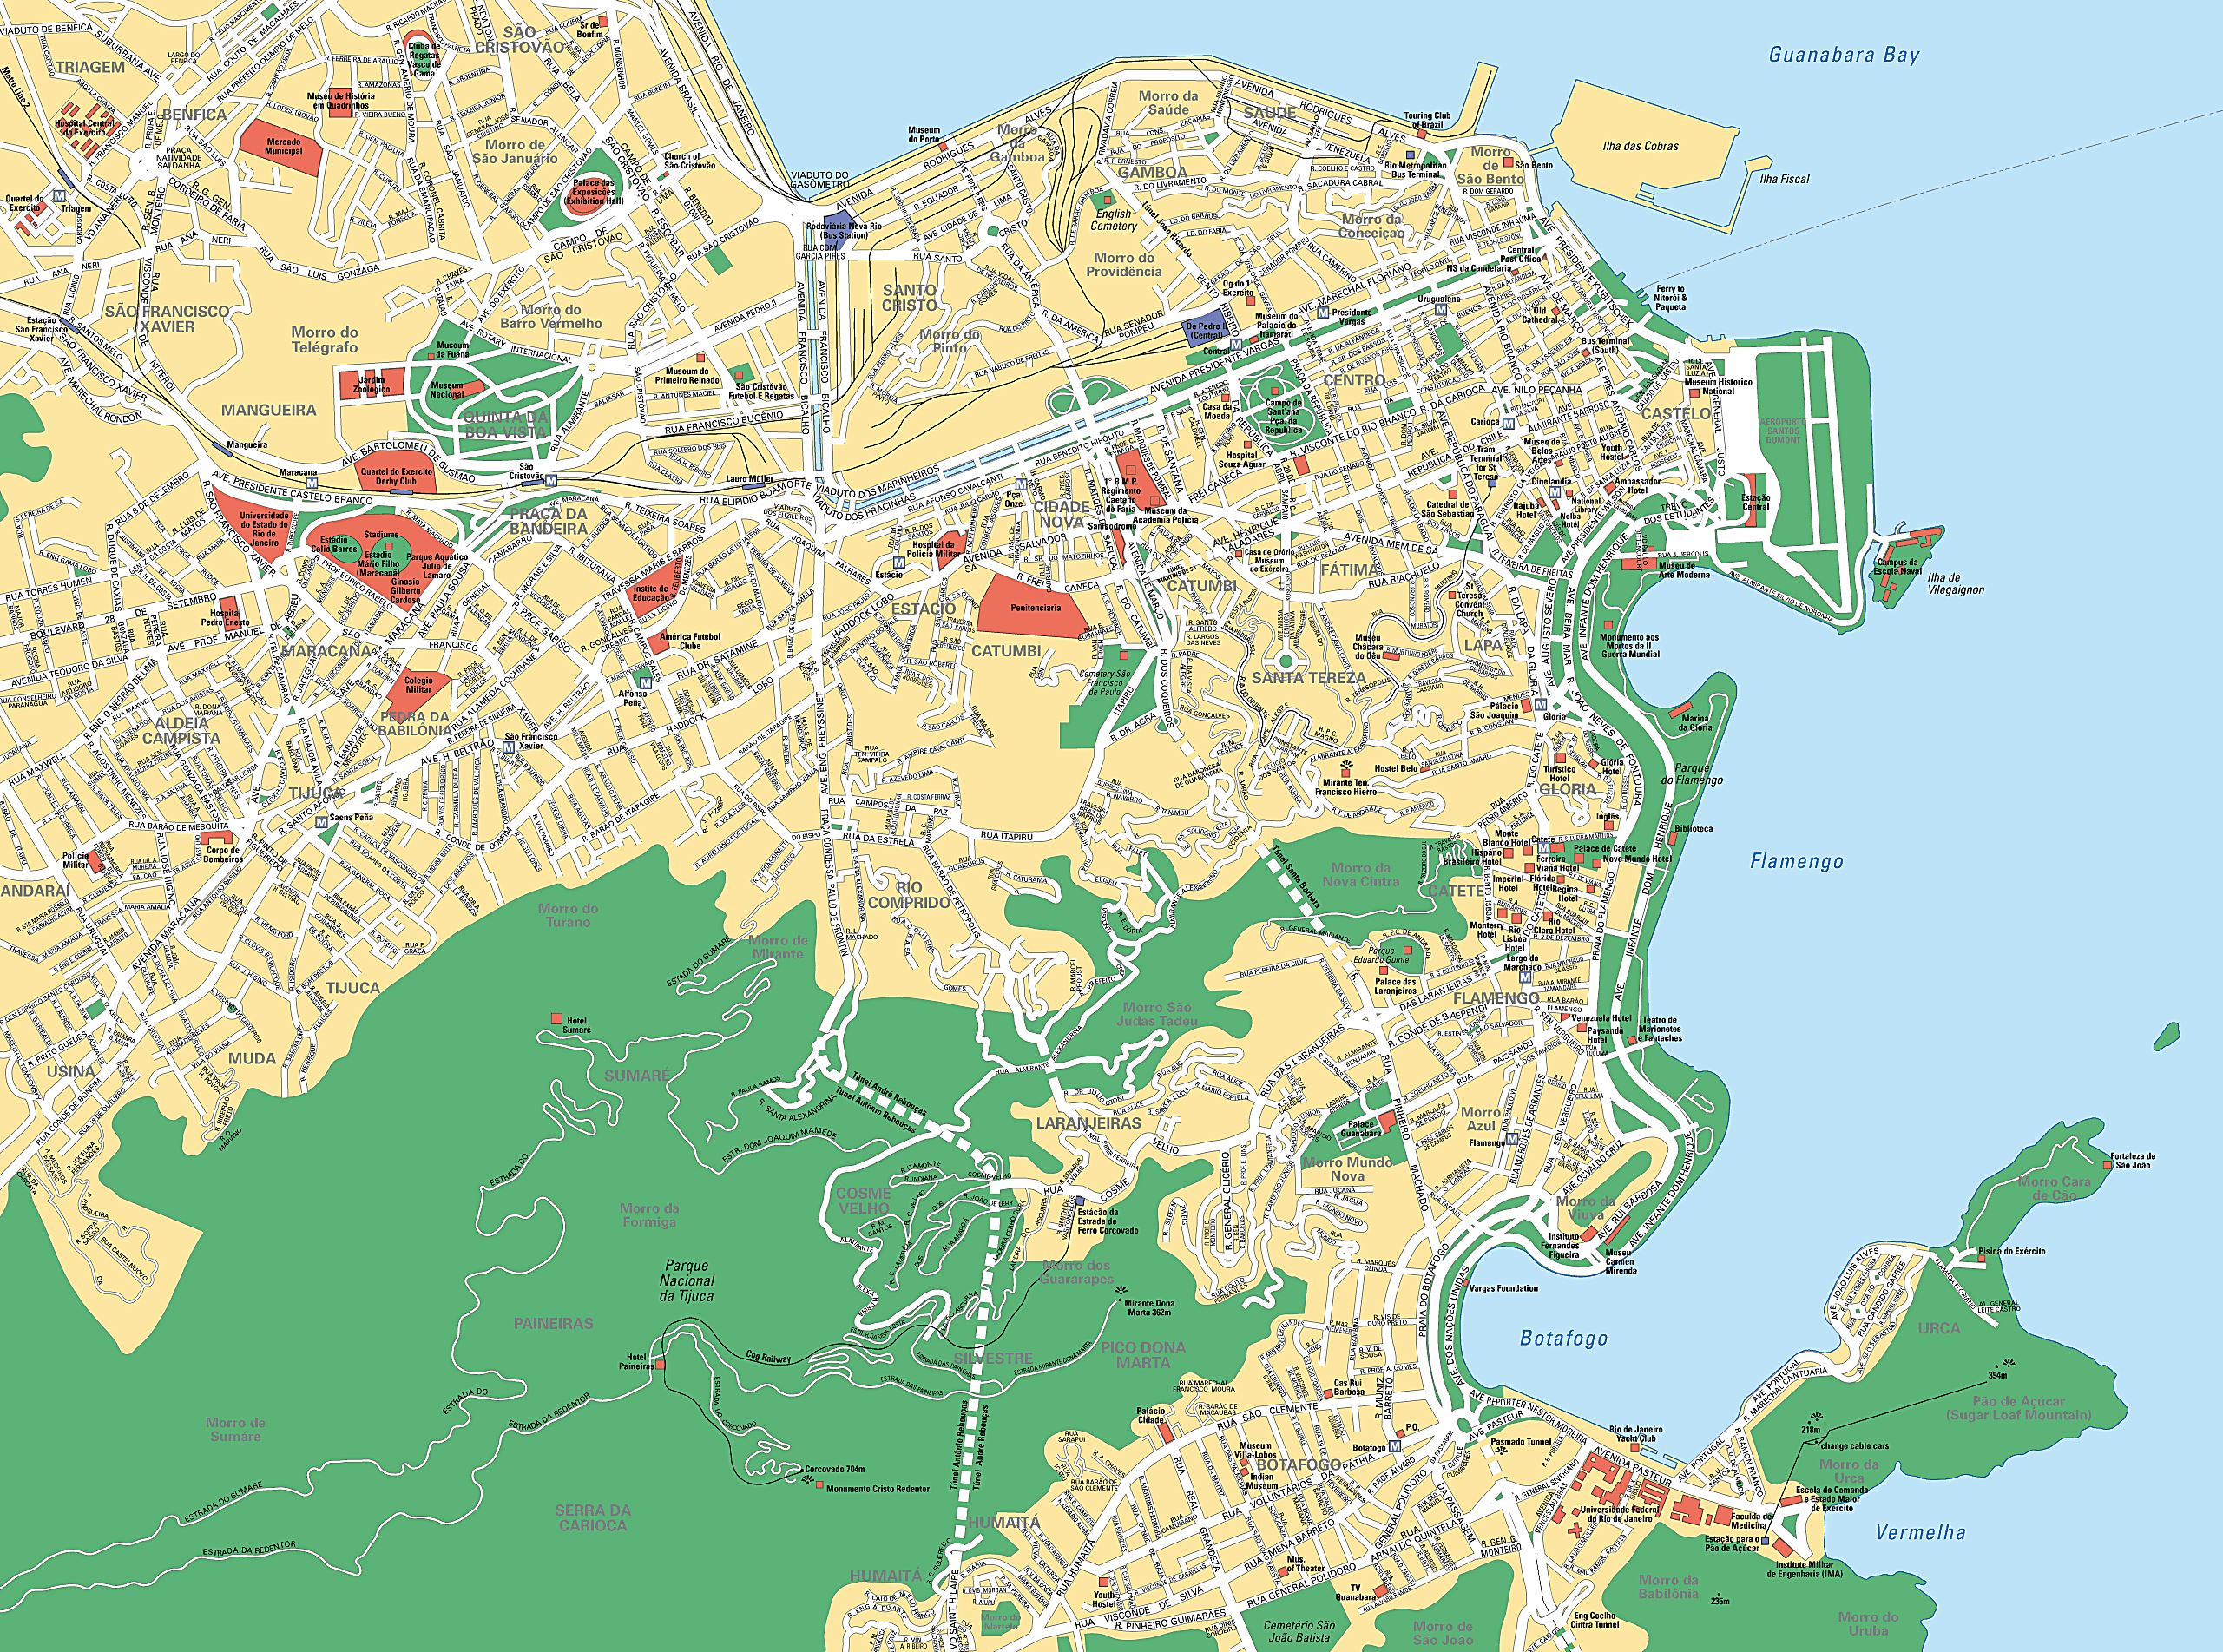 Where Is Rio On The Map Large Rio de Janeiro Maps for Free Download and Print | High